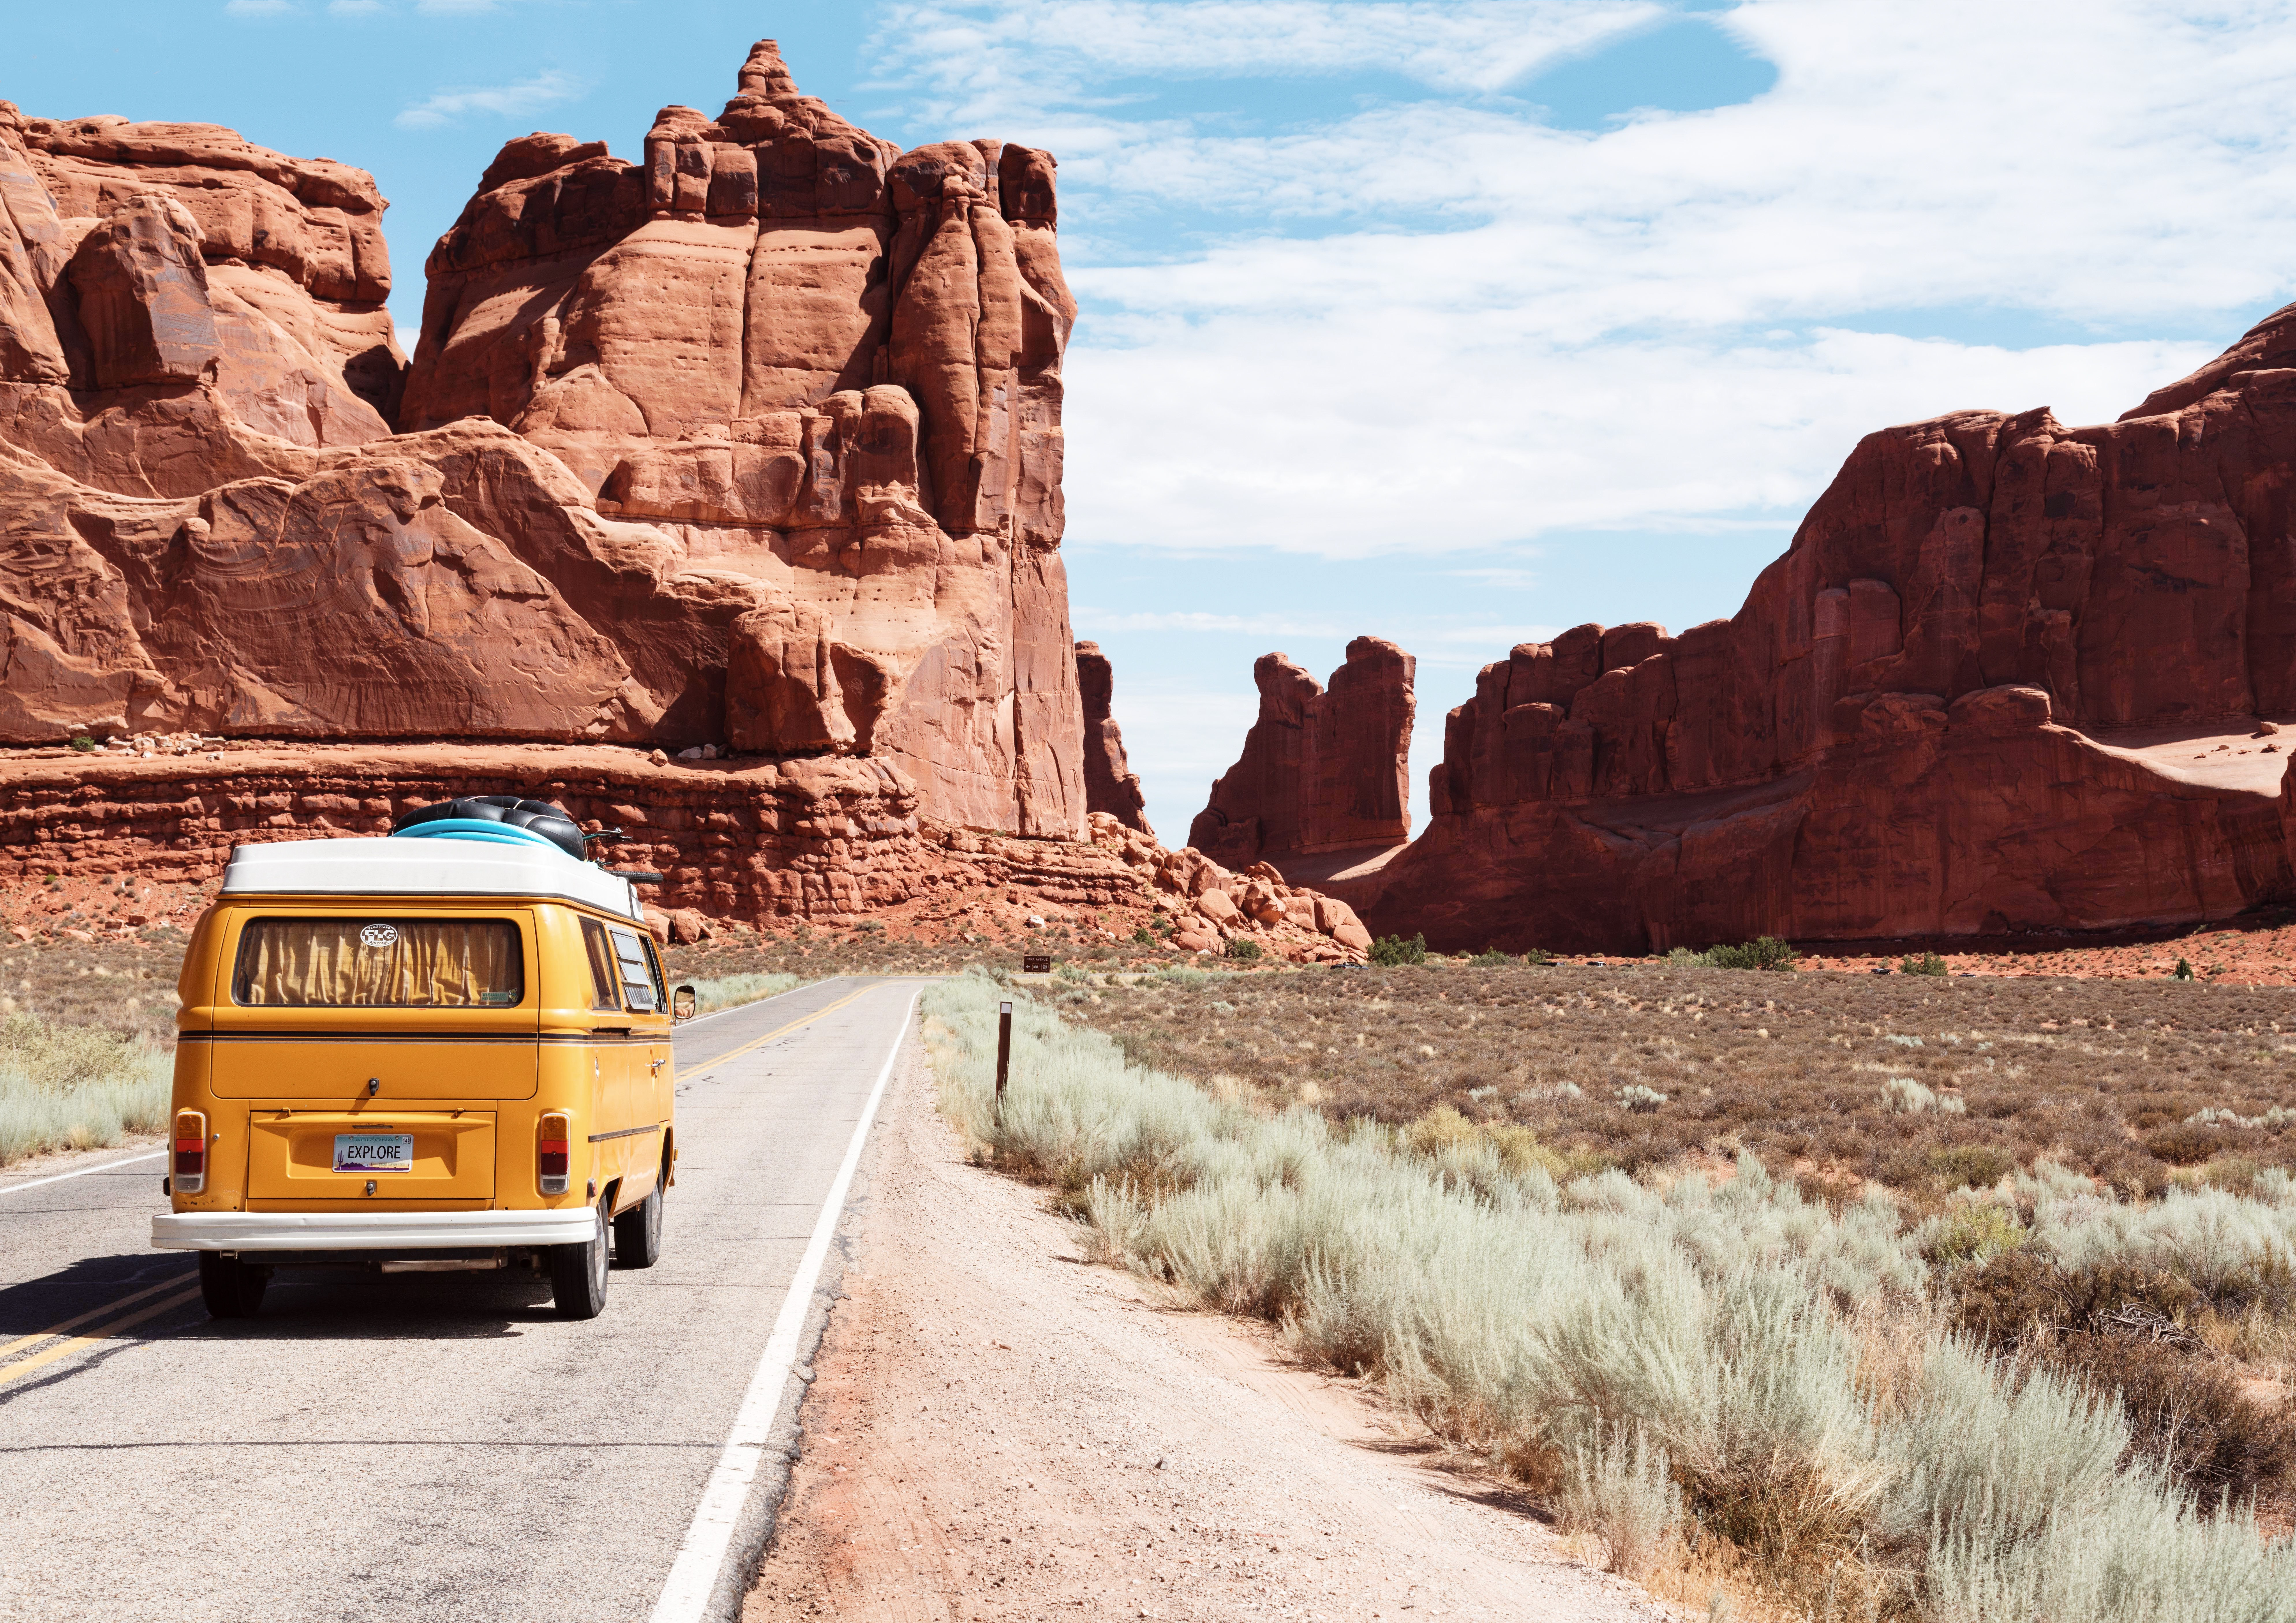 Yellow volkswagen bus on road in Arches NP